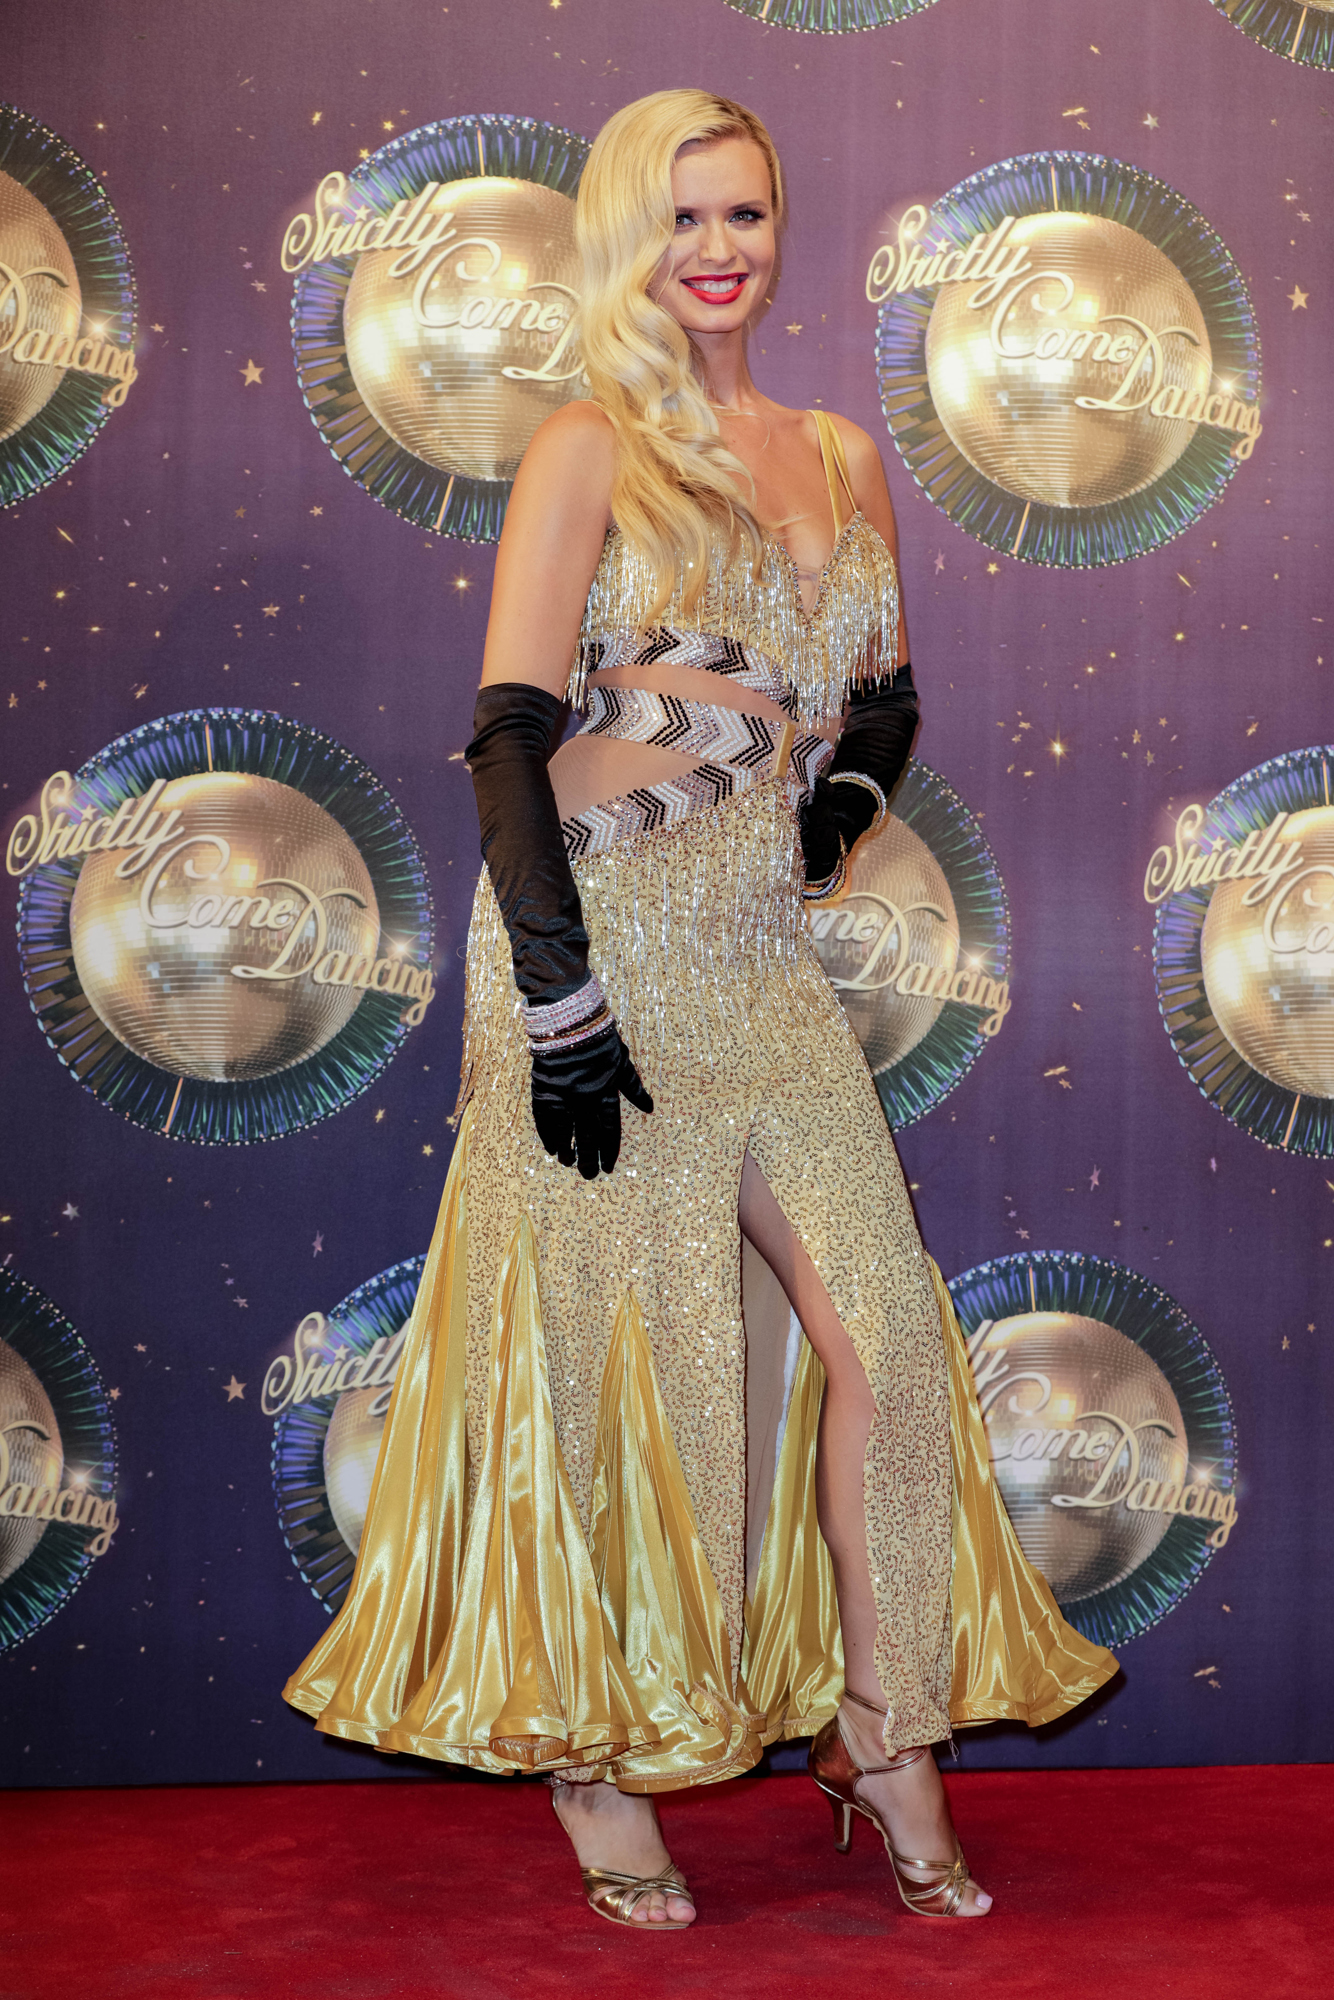 PHT_B5327_strictly_come_dancing_14079.JPG